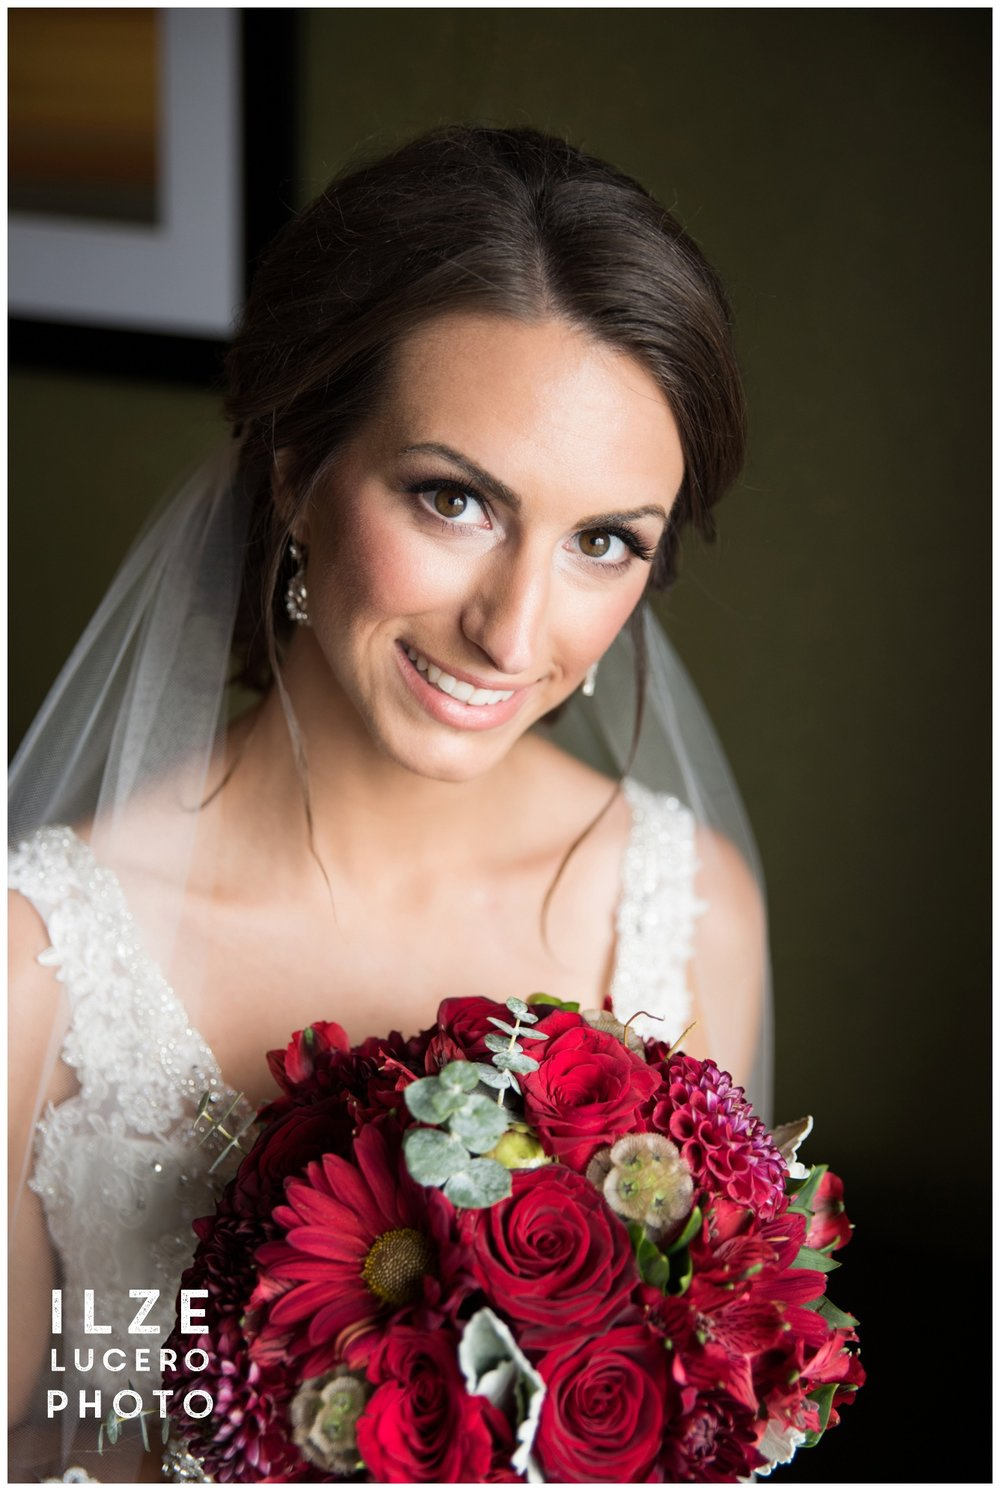 Bridal hair and makeup inspiration